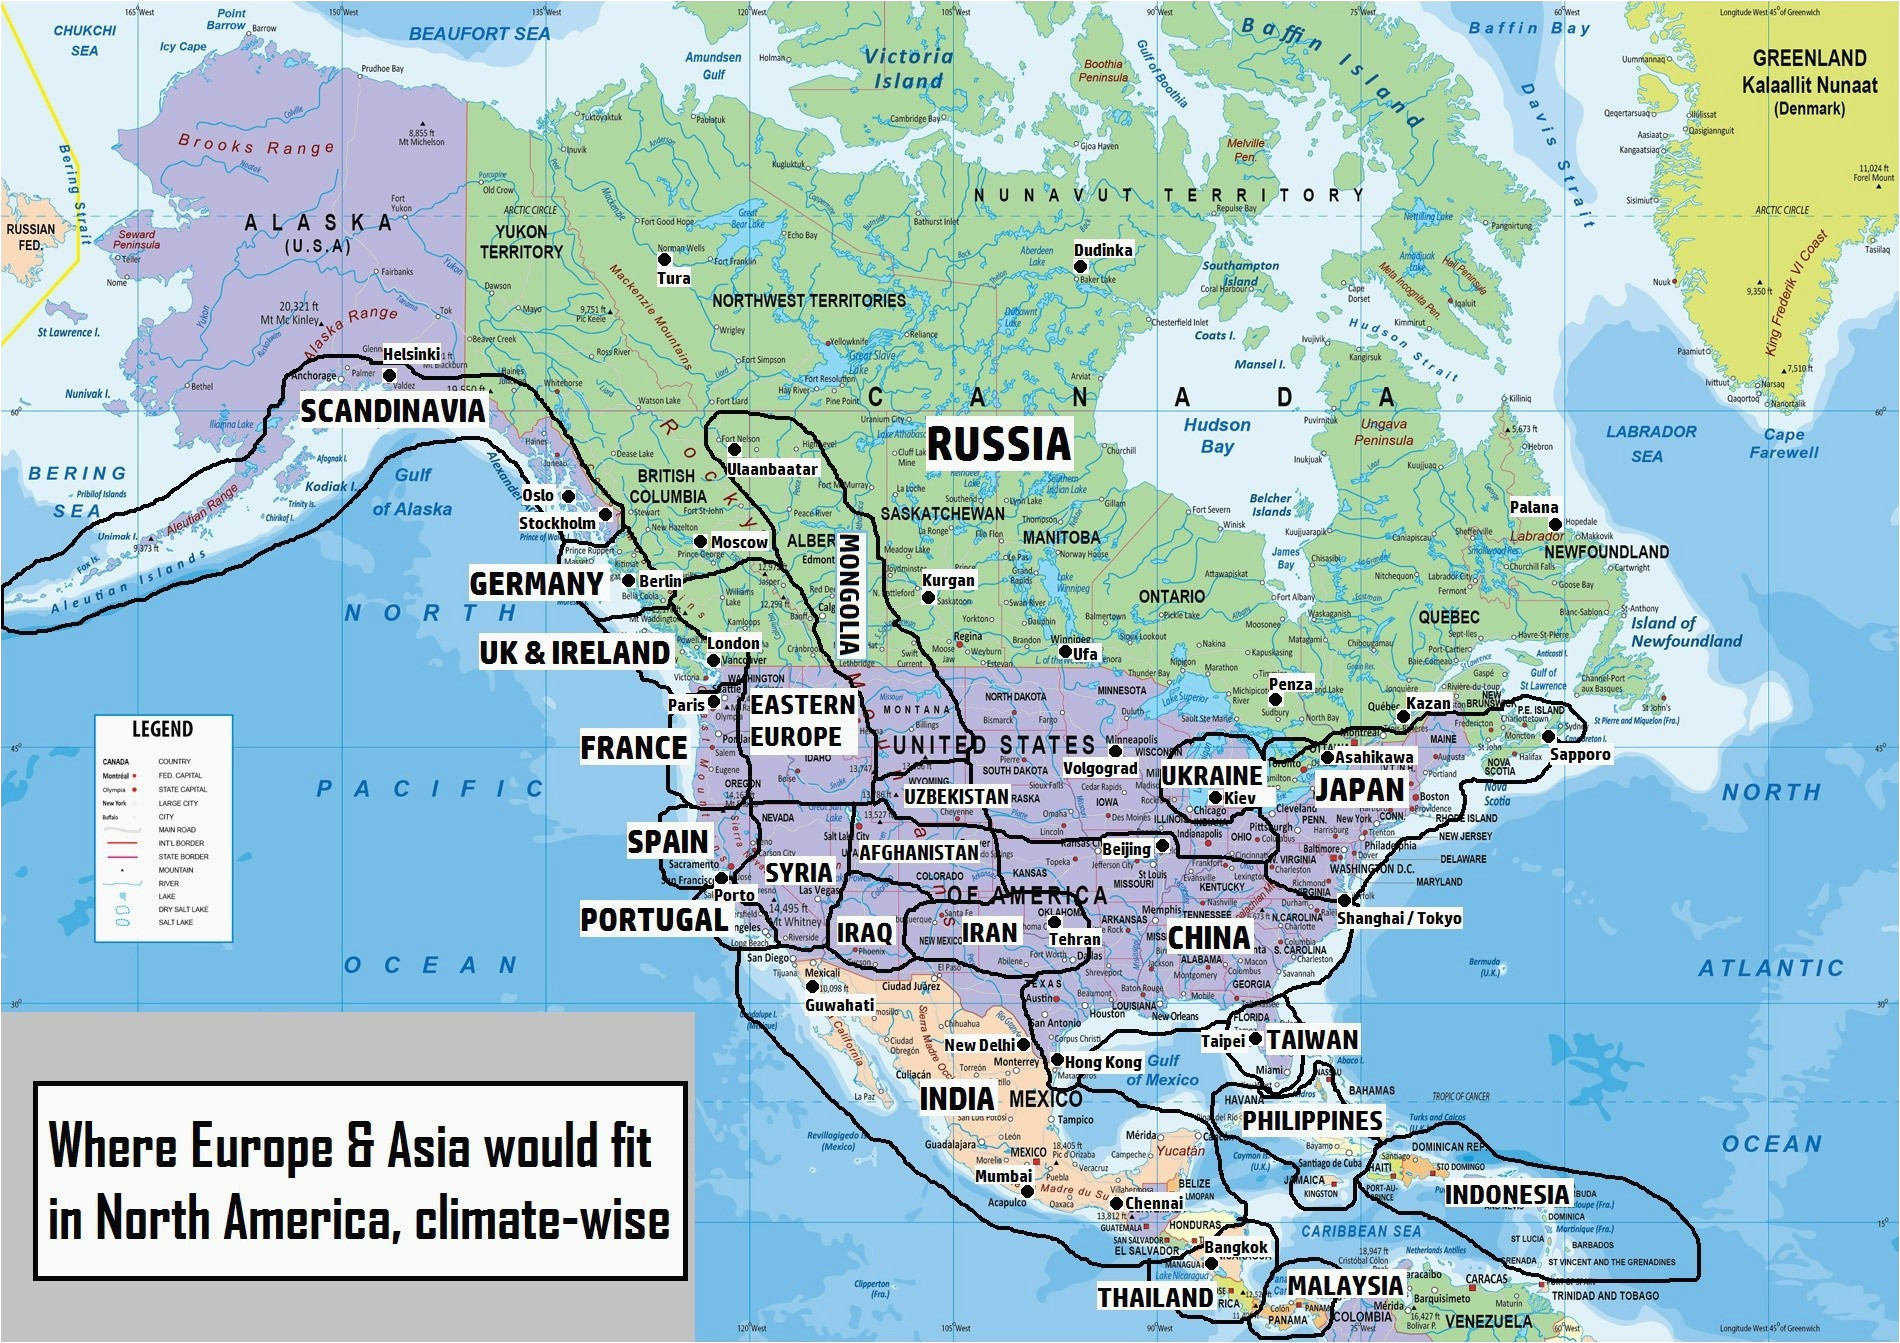 Faults In California Map United States Fault Line Map ... on new mexico faultlines map, earthquake frequency map, fault line map, united states fault zone map, earth faults map, united states earthquake map, us fault lines, wisconsin geology map, usgs seismic zone map,